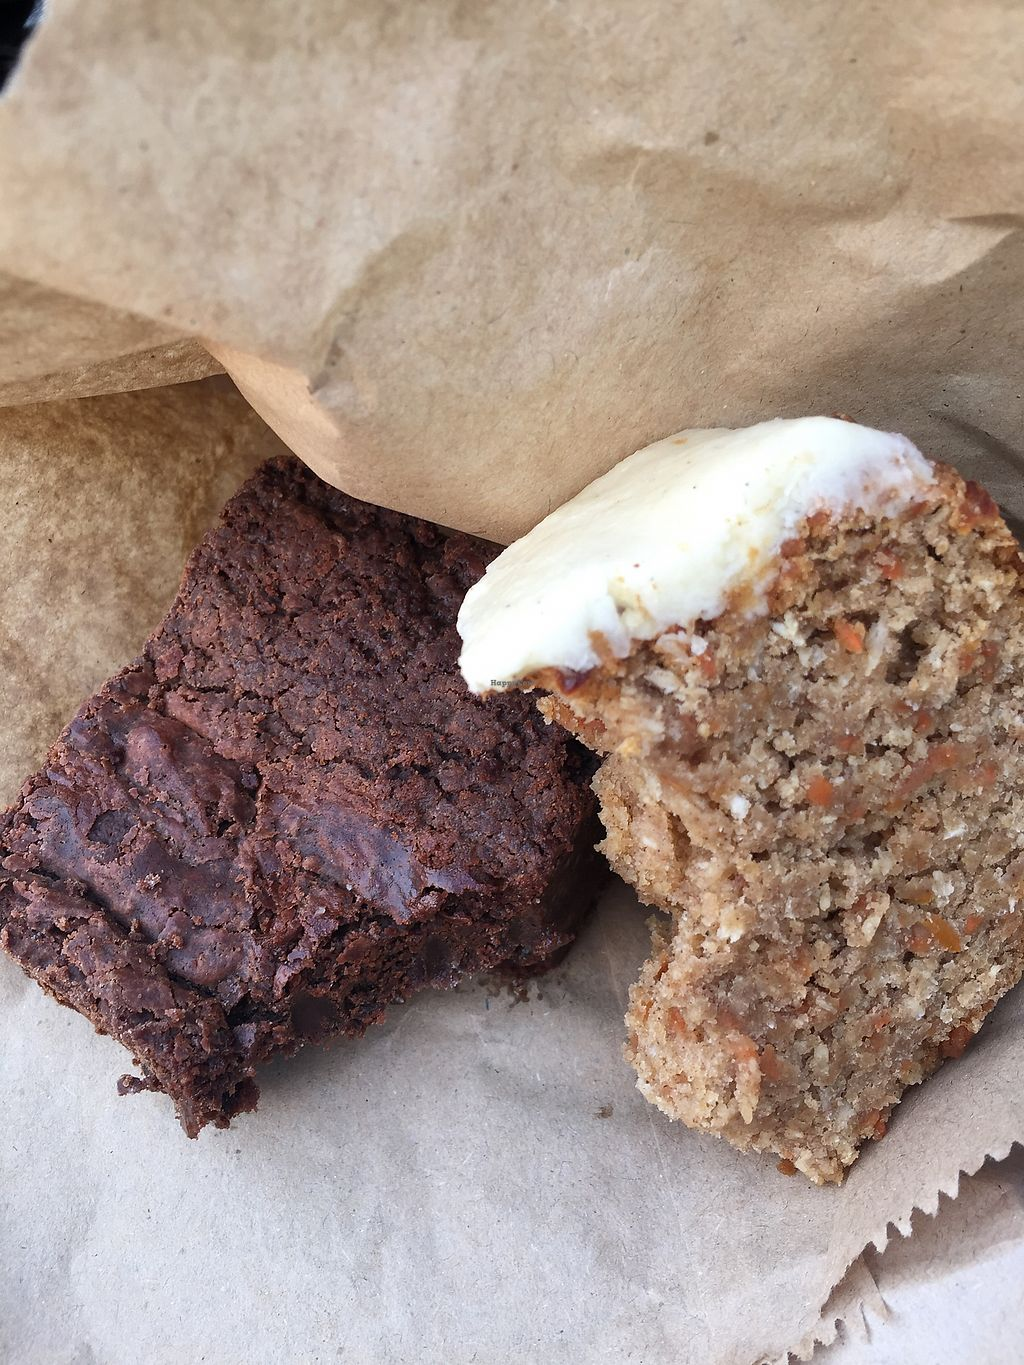 """Photo of Temple of Camden  by <a href=""""/members/profile/milcheto"""">milcheto</a> <br/>Carrot cake and brownie <br/> April 7, 2018  - <a href='/contact/abuse/image/111116/382047'>Report</a>"""